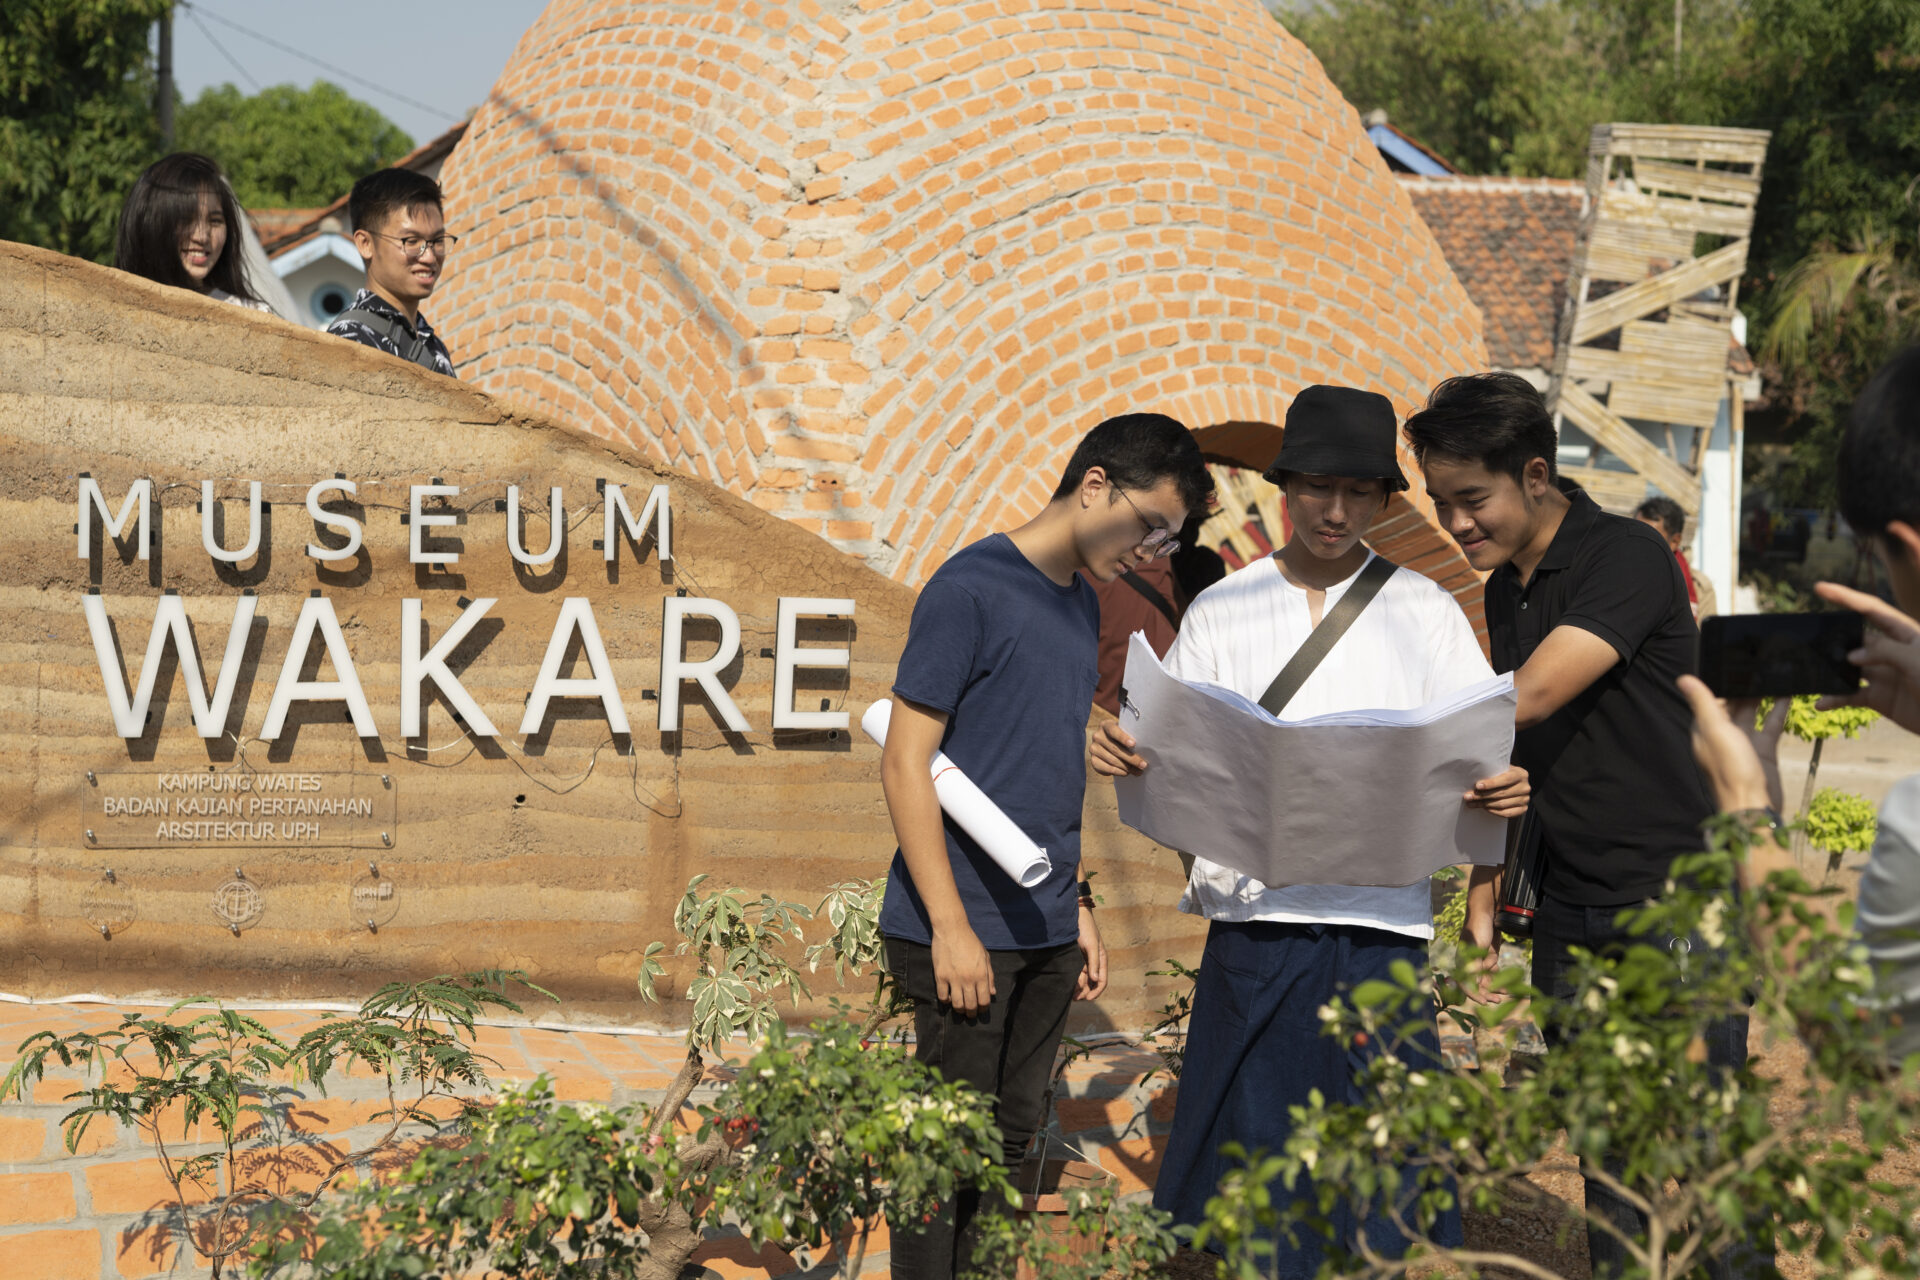 【Museums Link Asia-Pacific】A Museum for the Community! Indonesian WAKARE MUSEUM Tells Stories of the Land